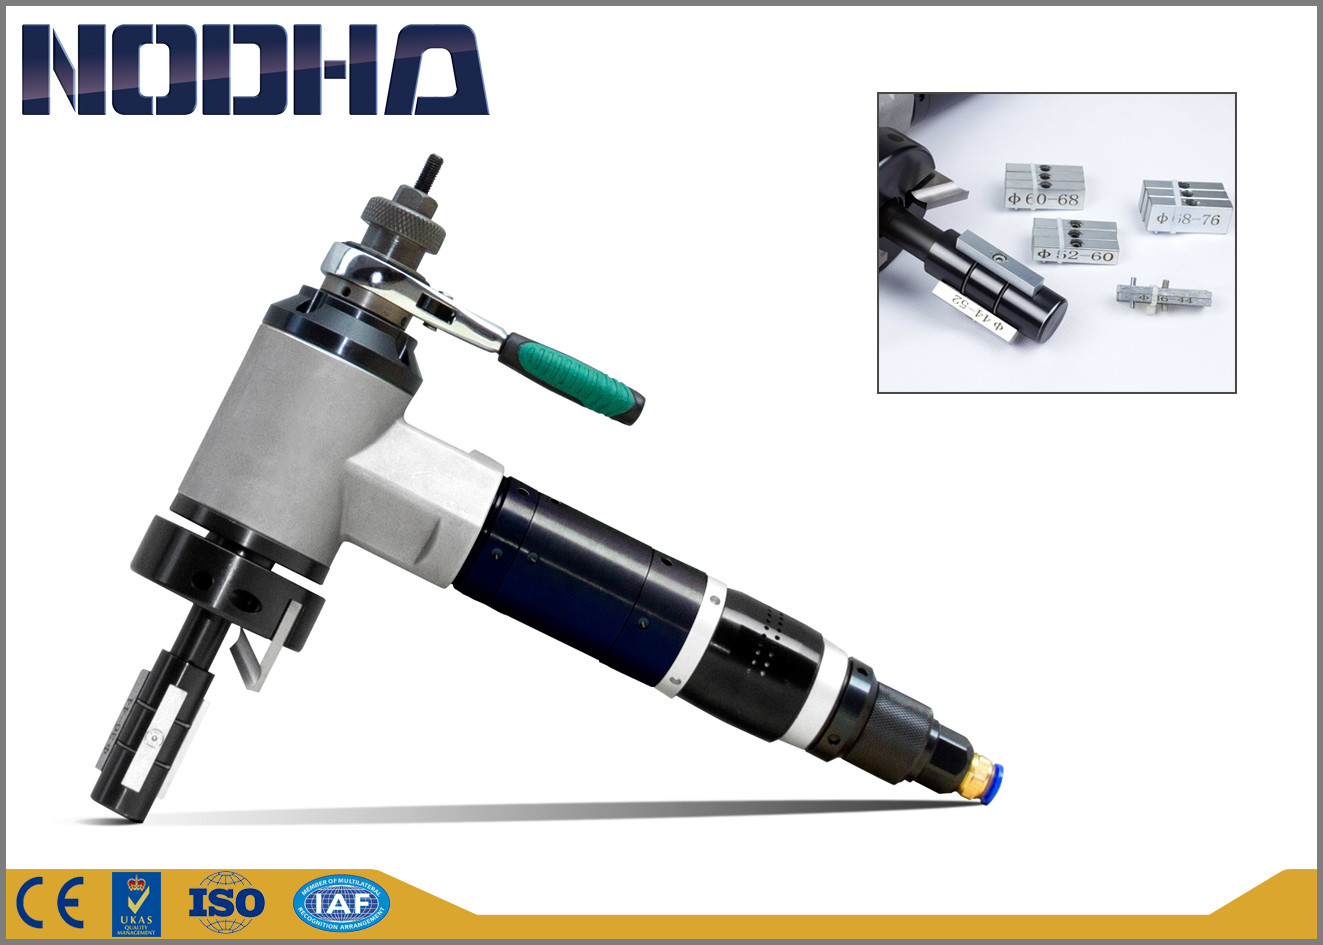 900L/Min@0.6Mpa Pneumatic Pipe Beveling Machine autofeed 3'' OD new surface treatment OEM / ODM Available NODHA